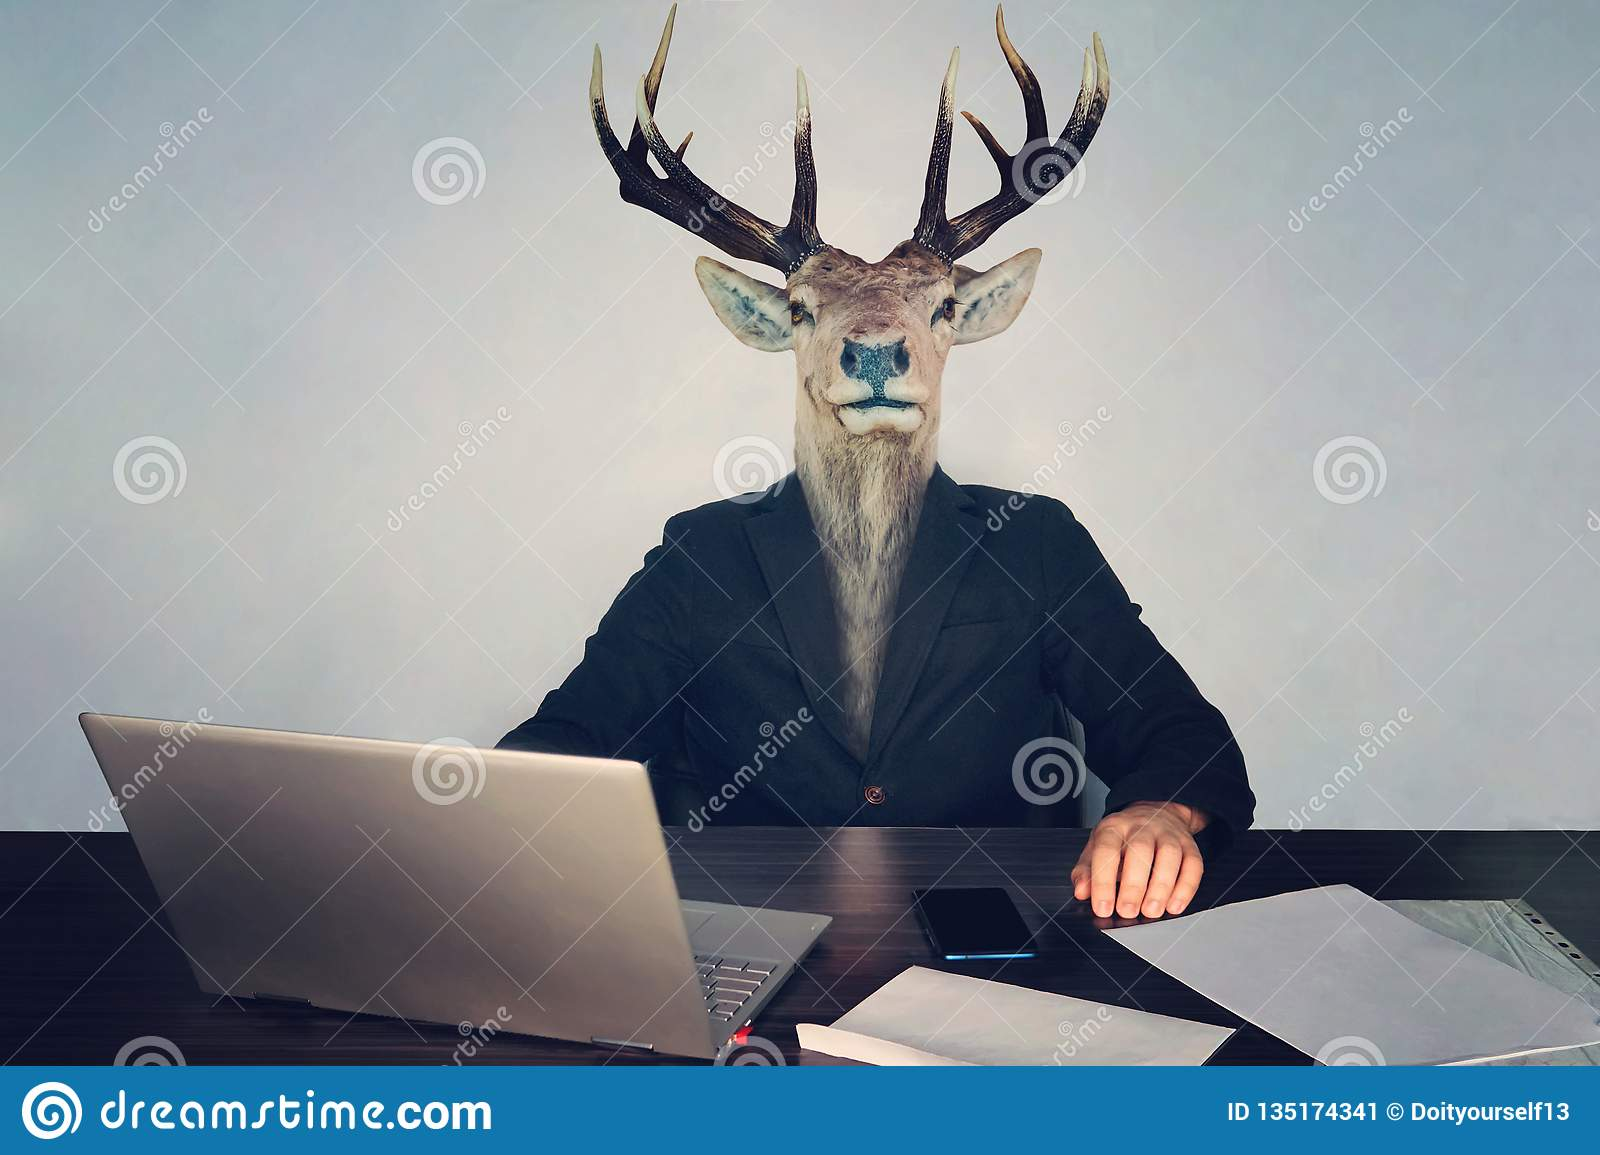 male business man with deer head on a blue background in the office at the Desk. concept of irrational management. stupid